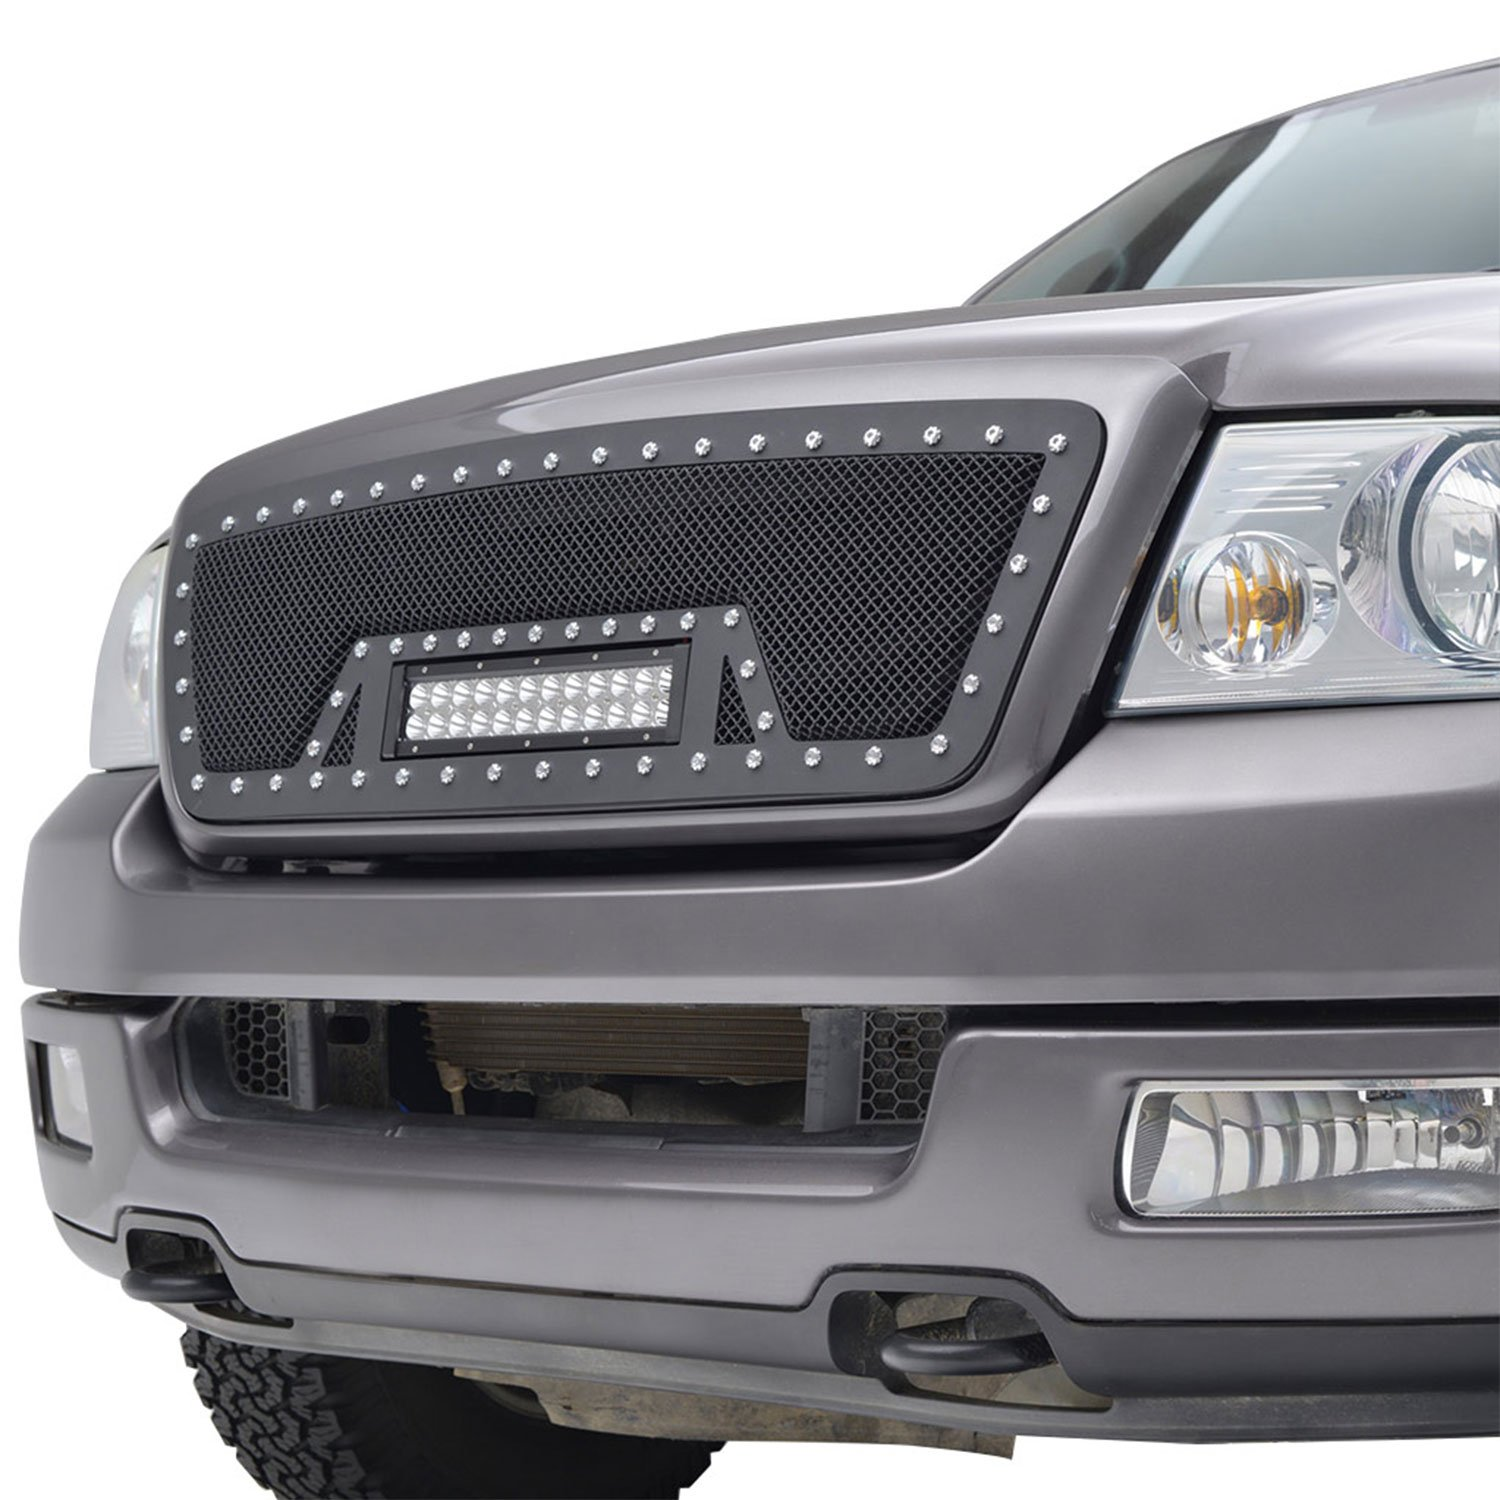 Fits 04-08 Ford F-150 Stainless Steel Mesh Grille Insert